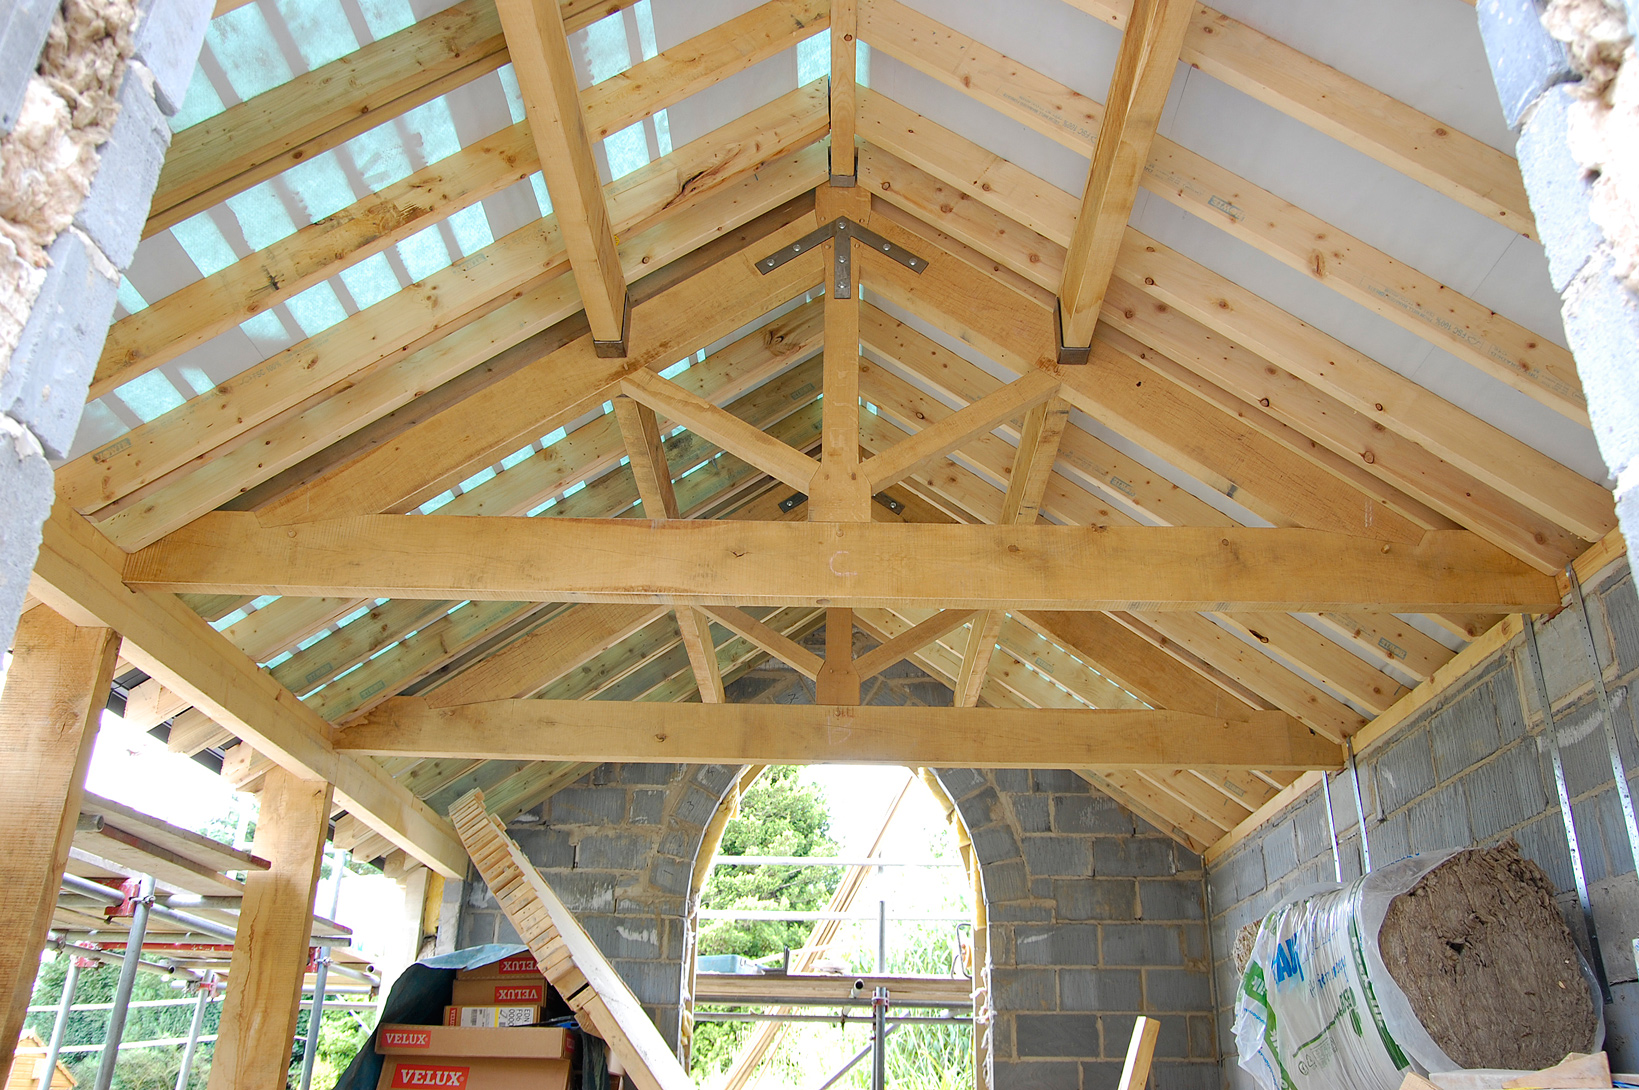 King Post Trusses, Air dried Oak